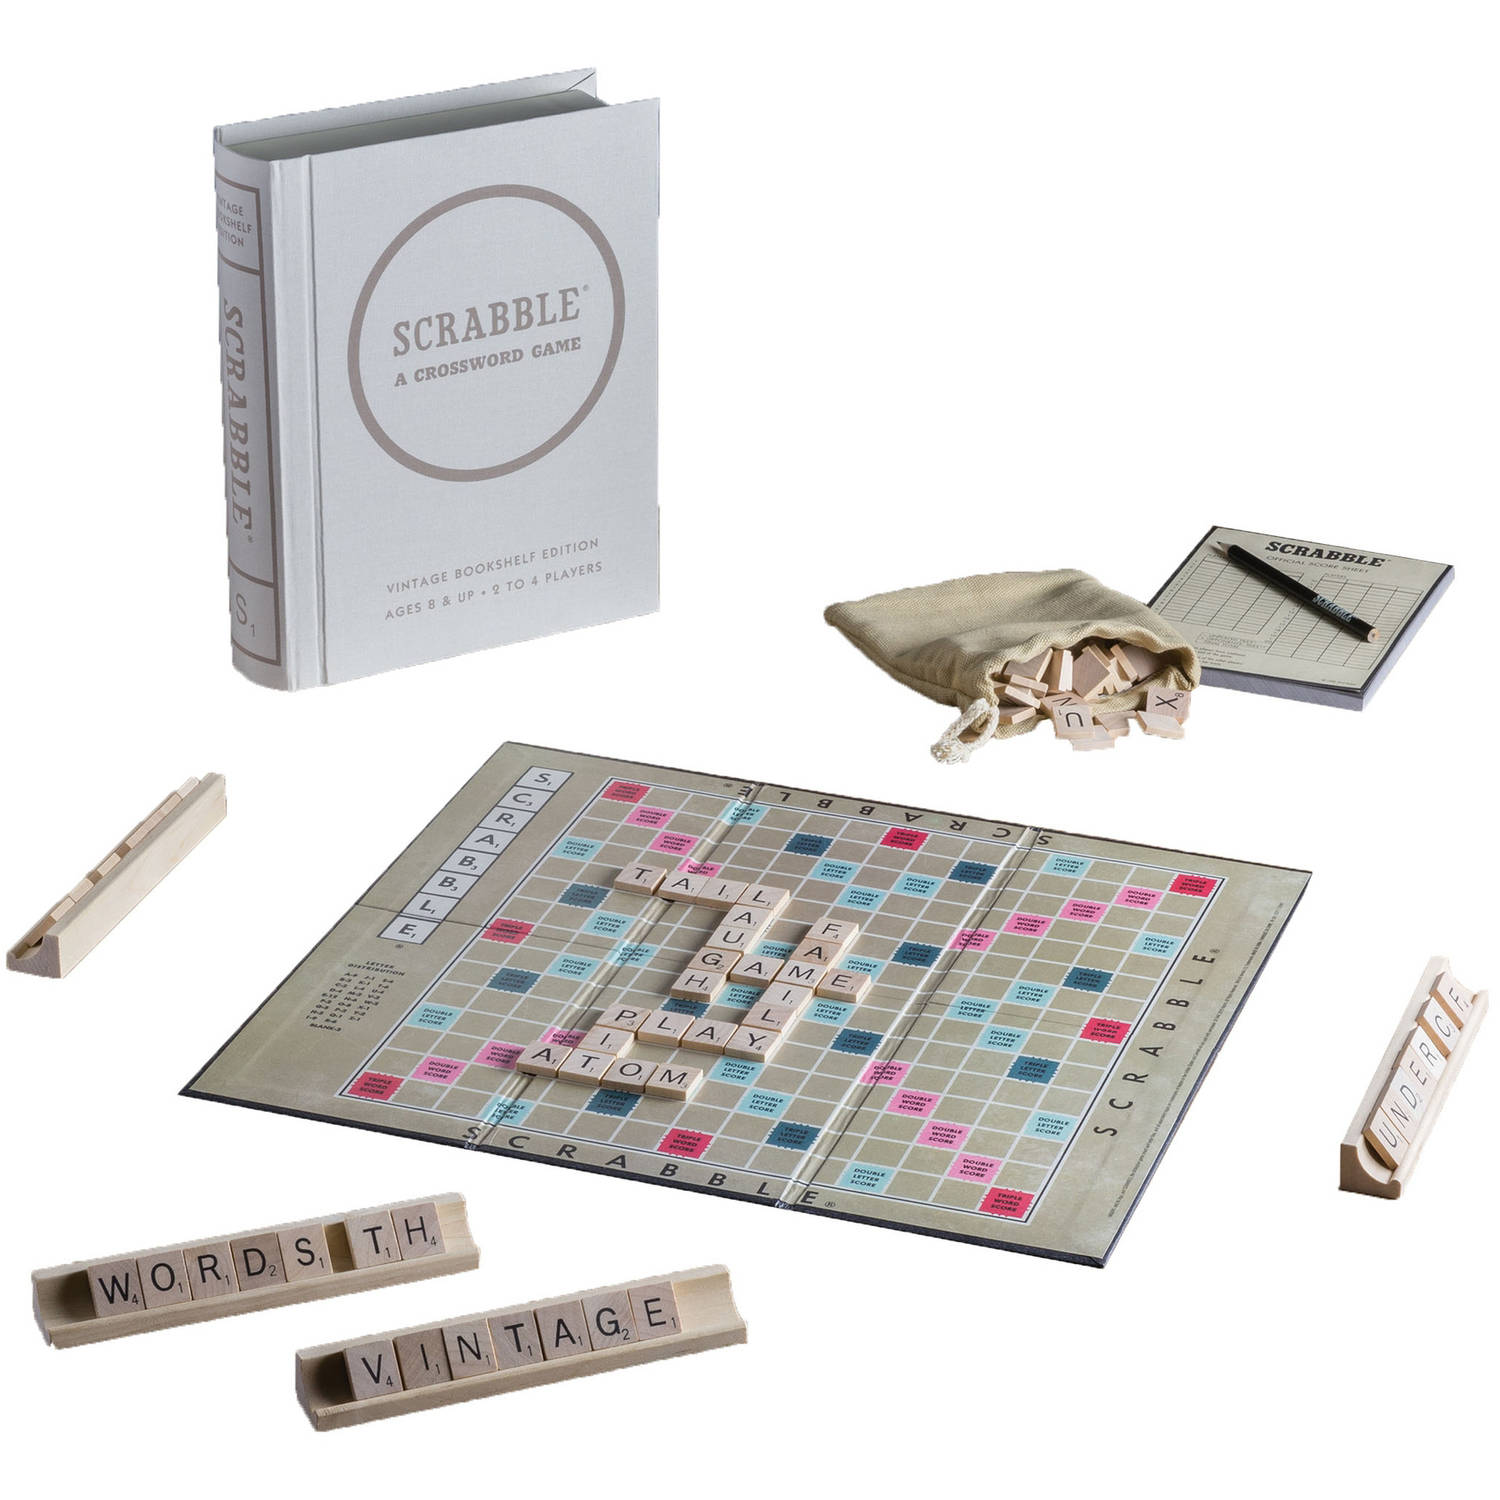 Scrabble Game Linen Book Vintage Edition by Winning Solutions